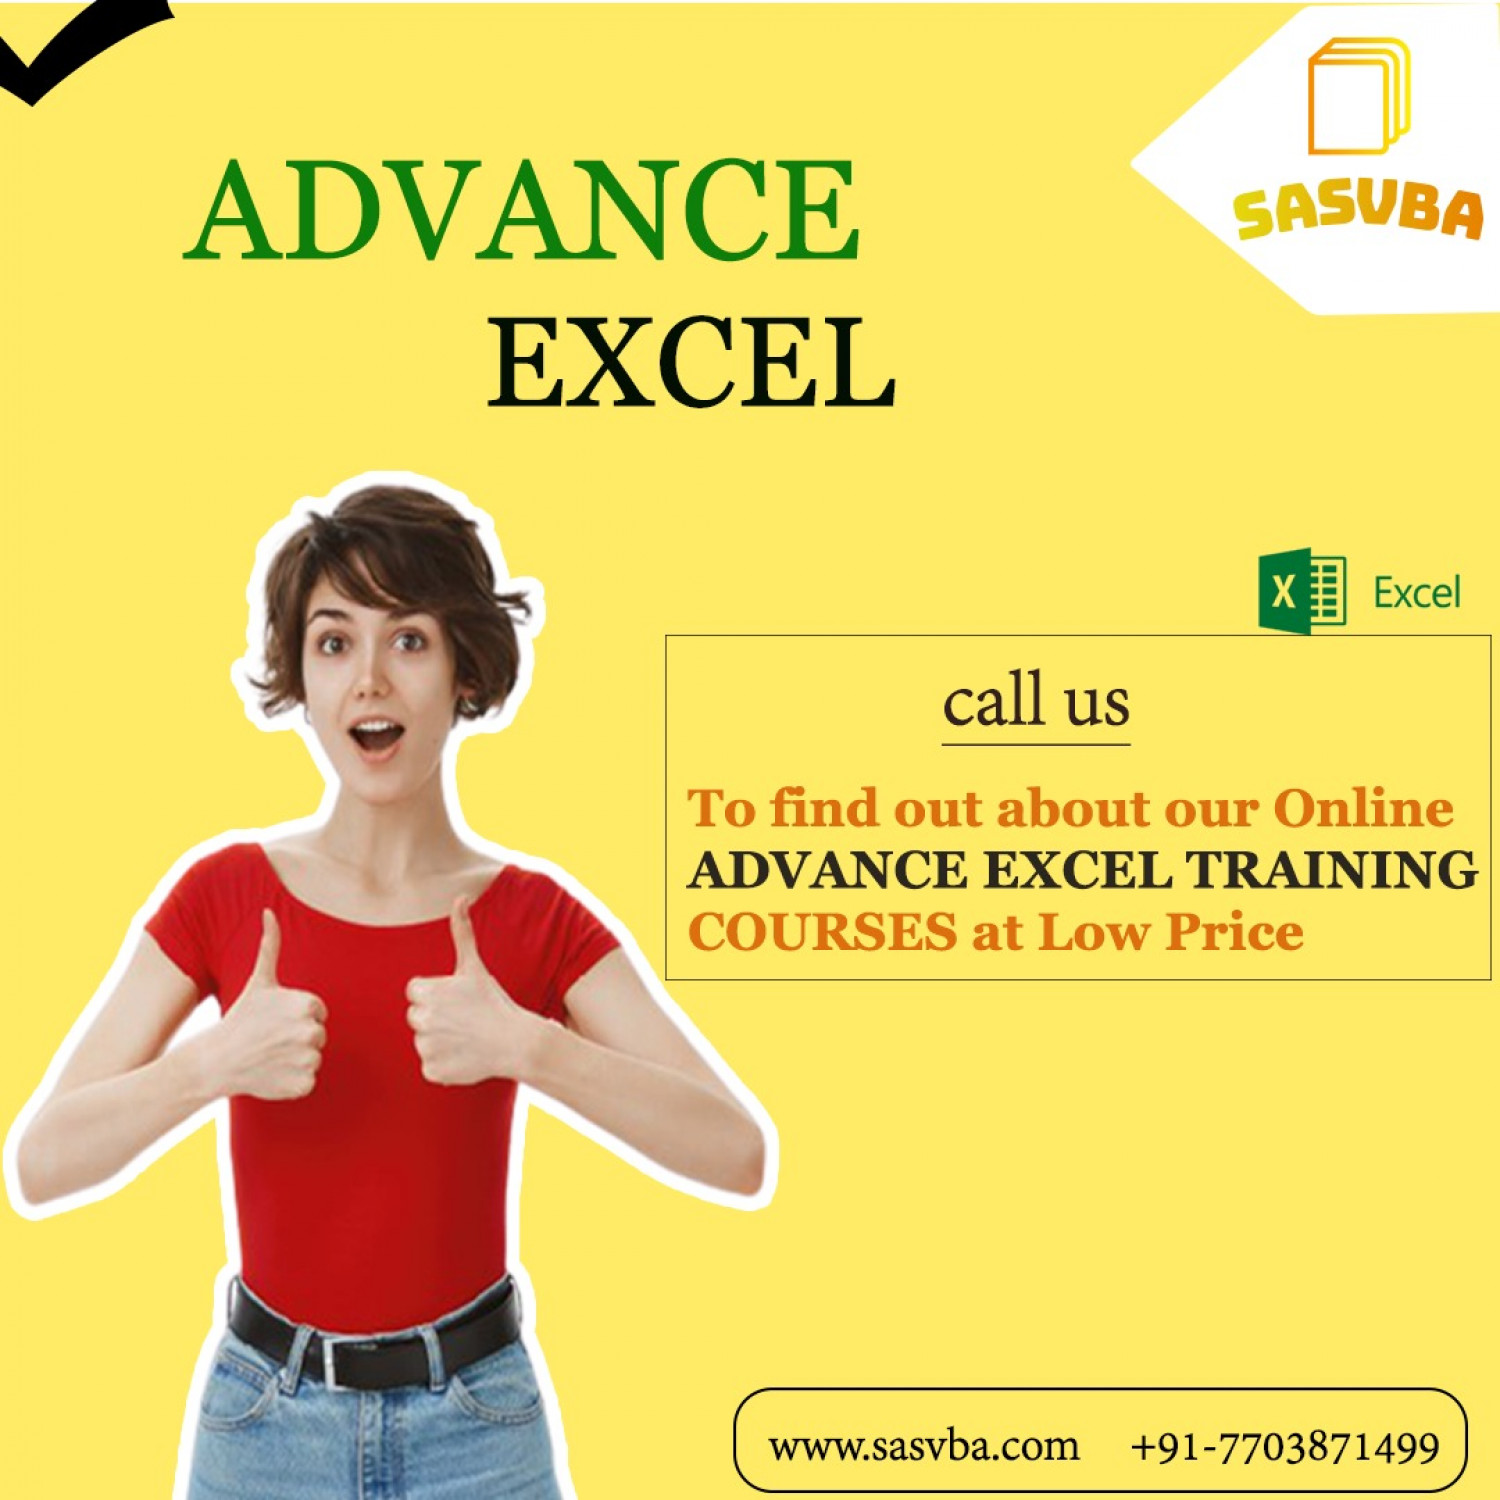 Advance Excel Course Infographic